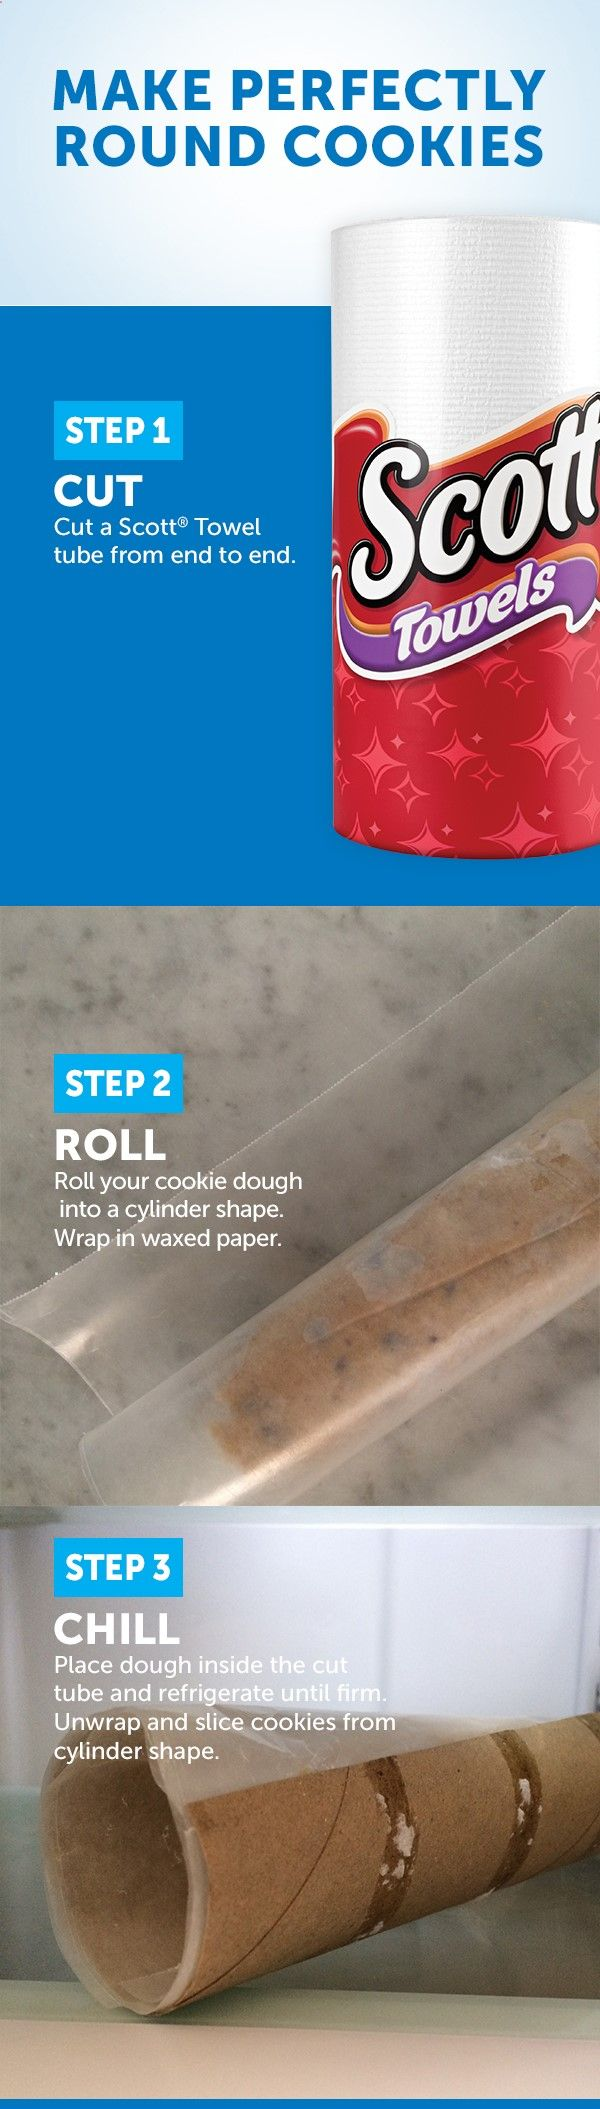 For perfectly round cookies, roll your cookie dough into a long cylinder shape. Cover with wax paper and store inside a cut paper towel tube while refrigerating. The structure of the cardboard will help the dough stay in a round shape. This is a great solution for holiday sugar cookies.